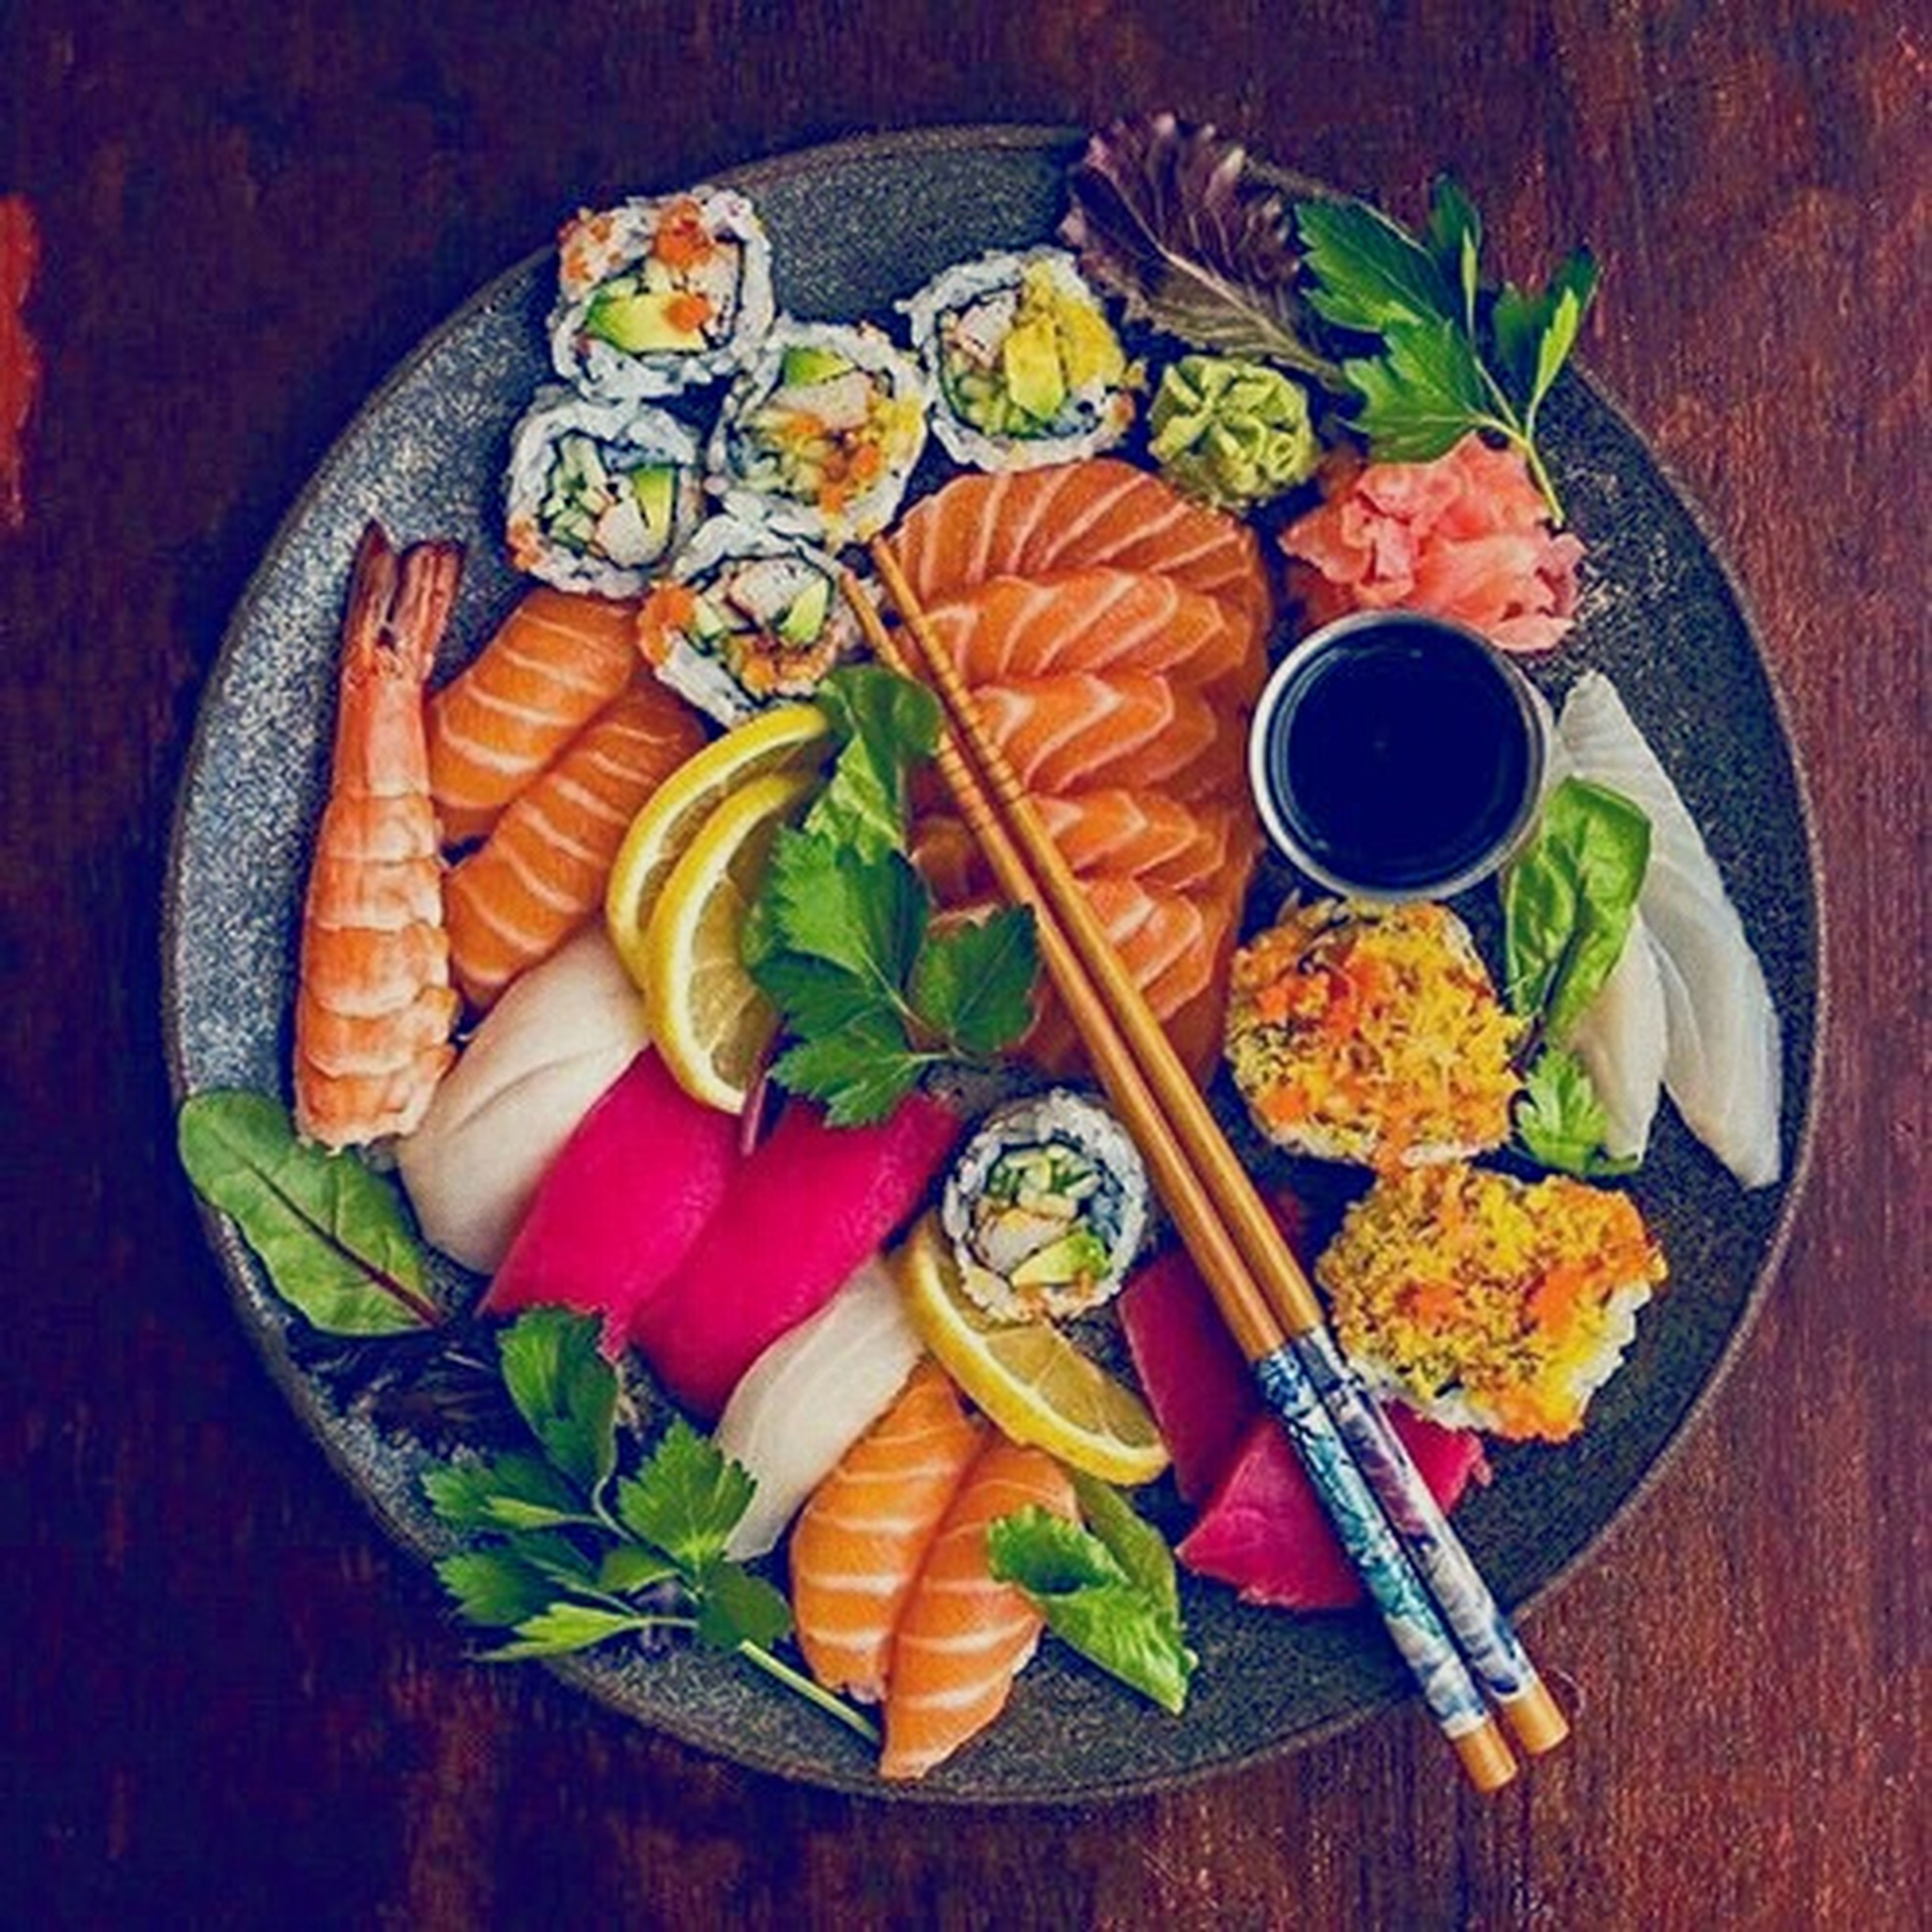 seafood, food, food and drink, vegetable, directly above, plate, healthy eating, freshness, no people, variation, slice, indoors, ready-to-eat, close-up, day